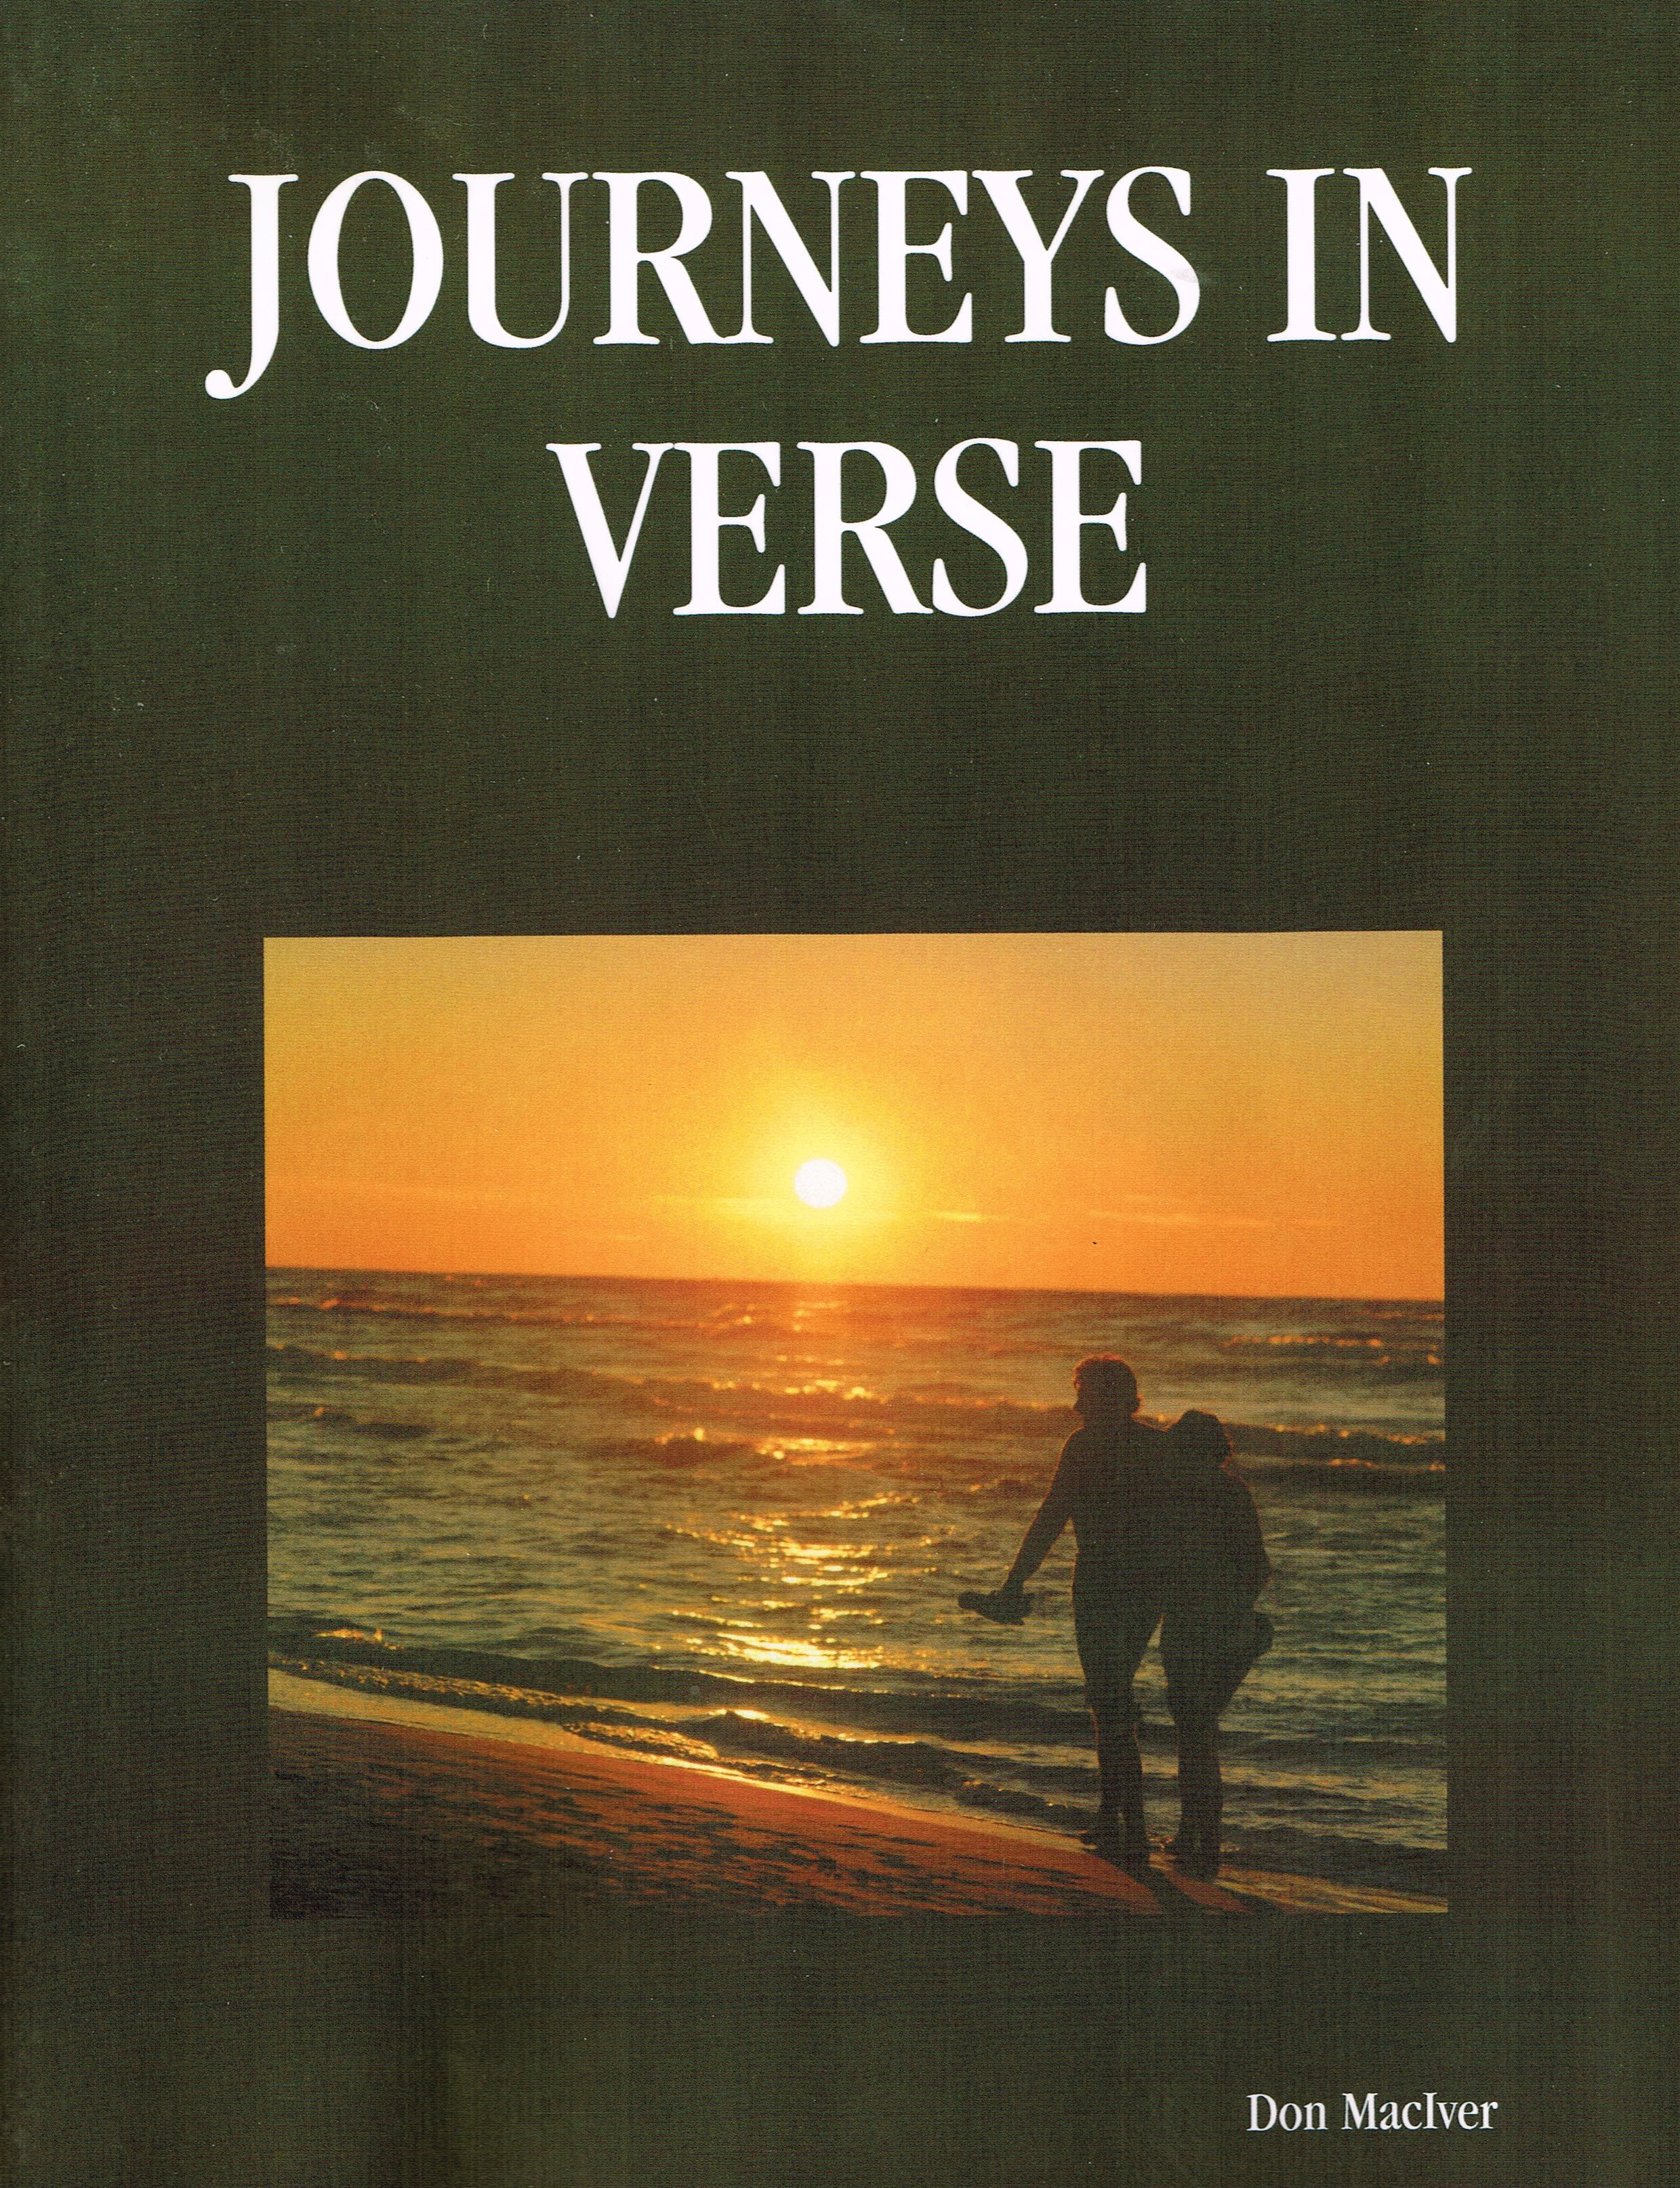 My first published book of original works of poetry and prose from 2004, 'Journeys In Verse' is where my writing all began. This edition is found at www.lulu.com/spotlight/whereeaglessoar